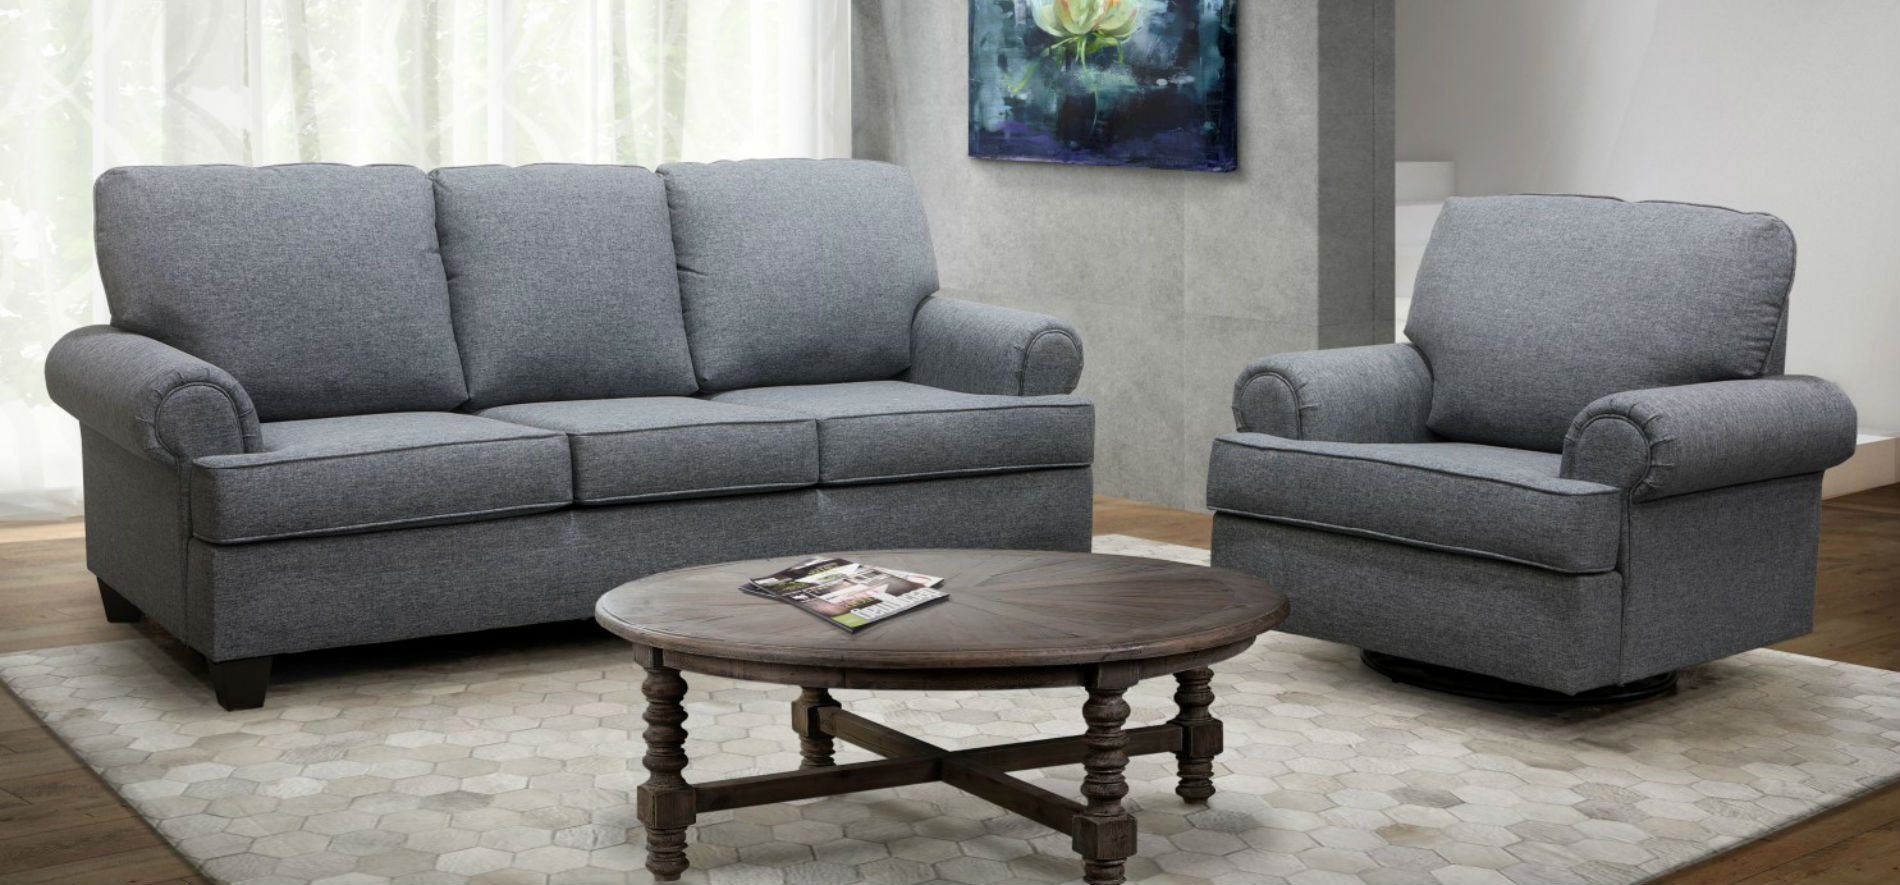 Londres Sofa Set 21793 made in Canada